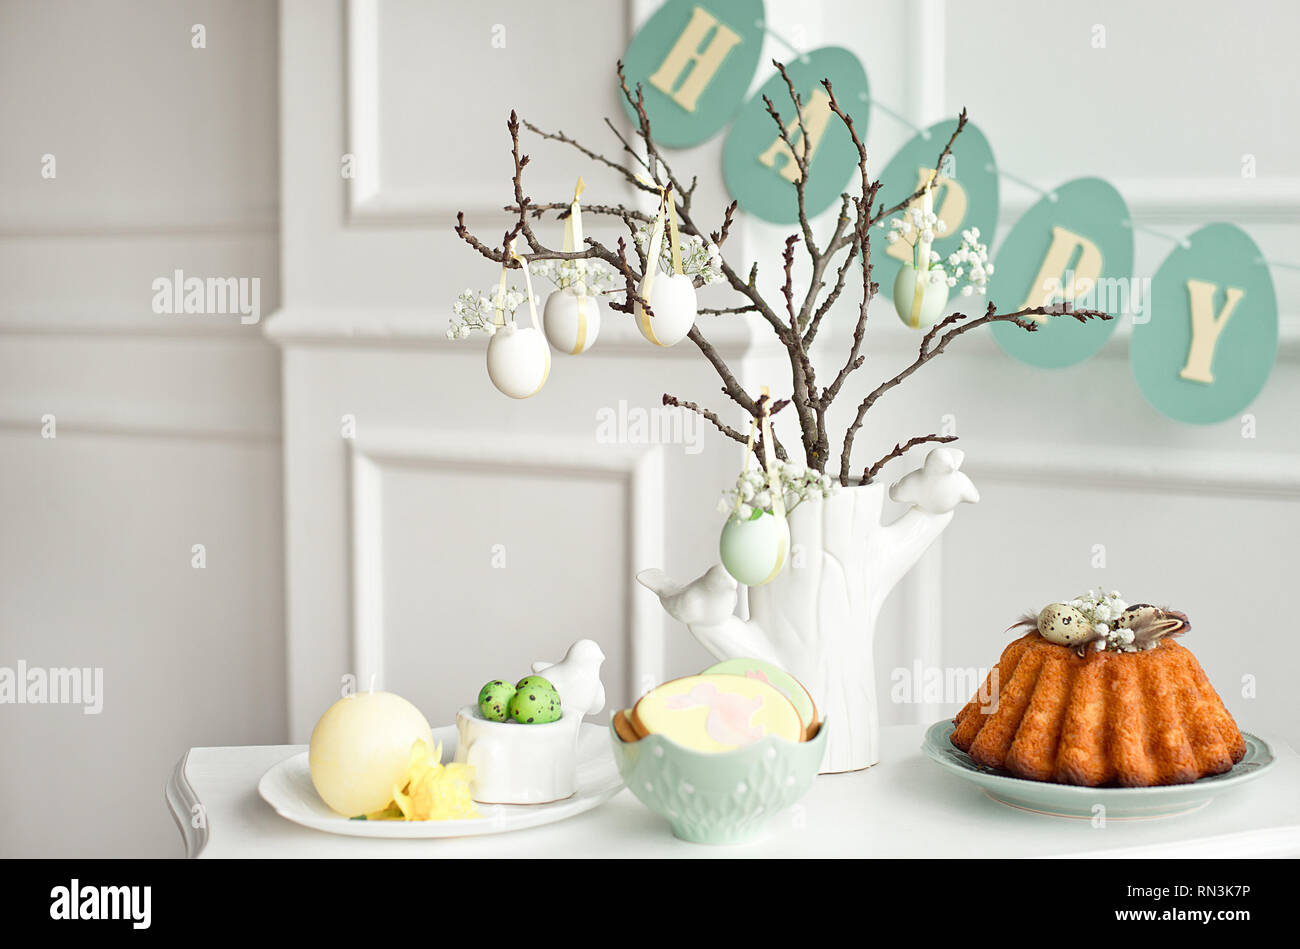 Festive Decoration Of The Easter Table A Vase With A Branch And